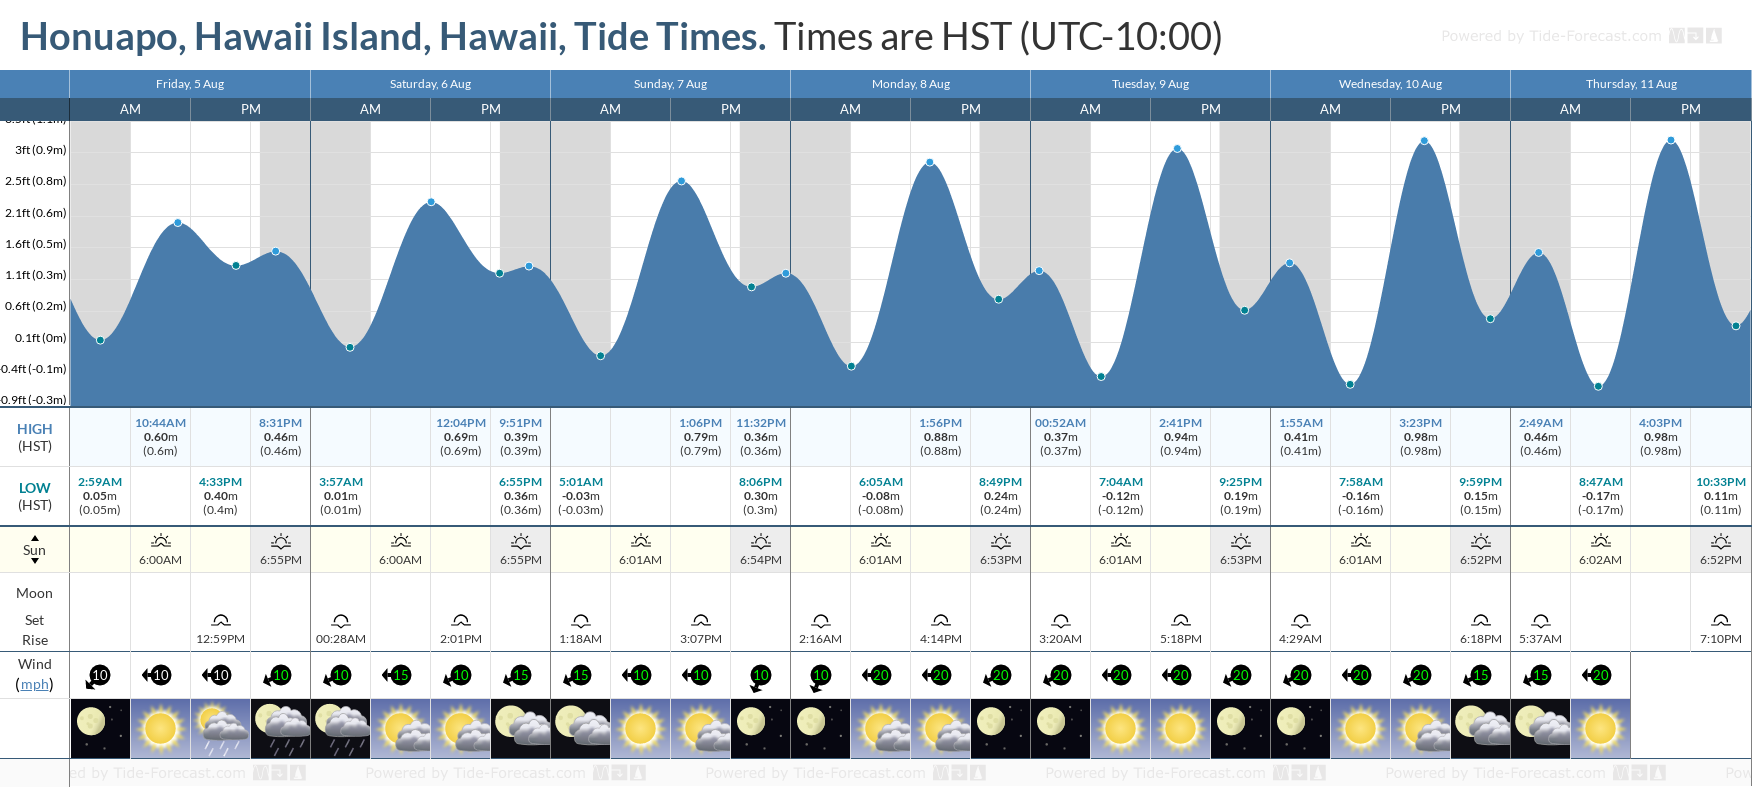 Honuapo, Hawaii Island, Hawaii Tide Chart including high and low tide tide times for the next 7 days